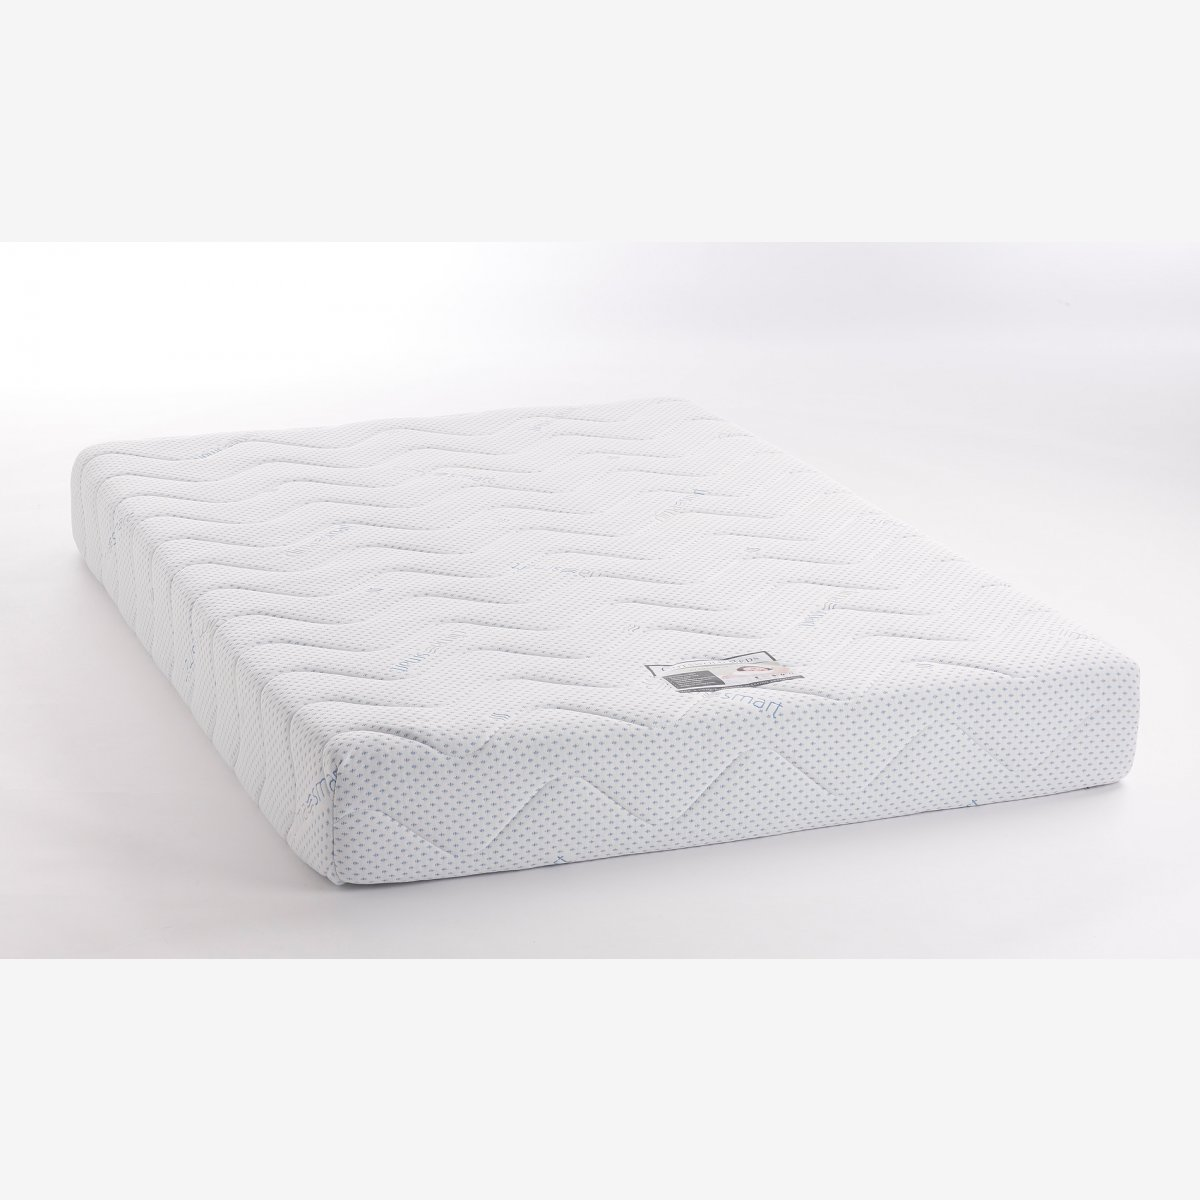 Clima Smart Foam Single Mattress Oak Furniture Land